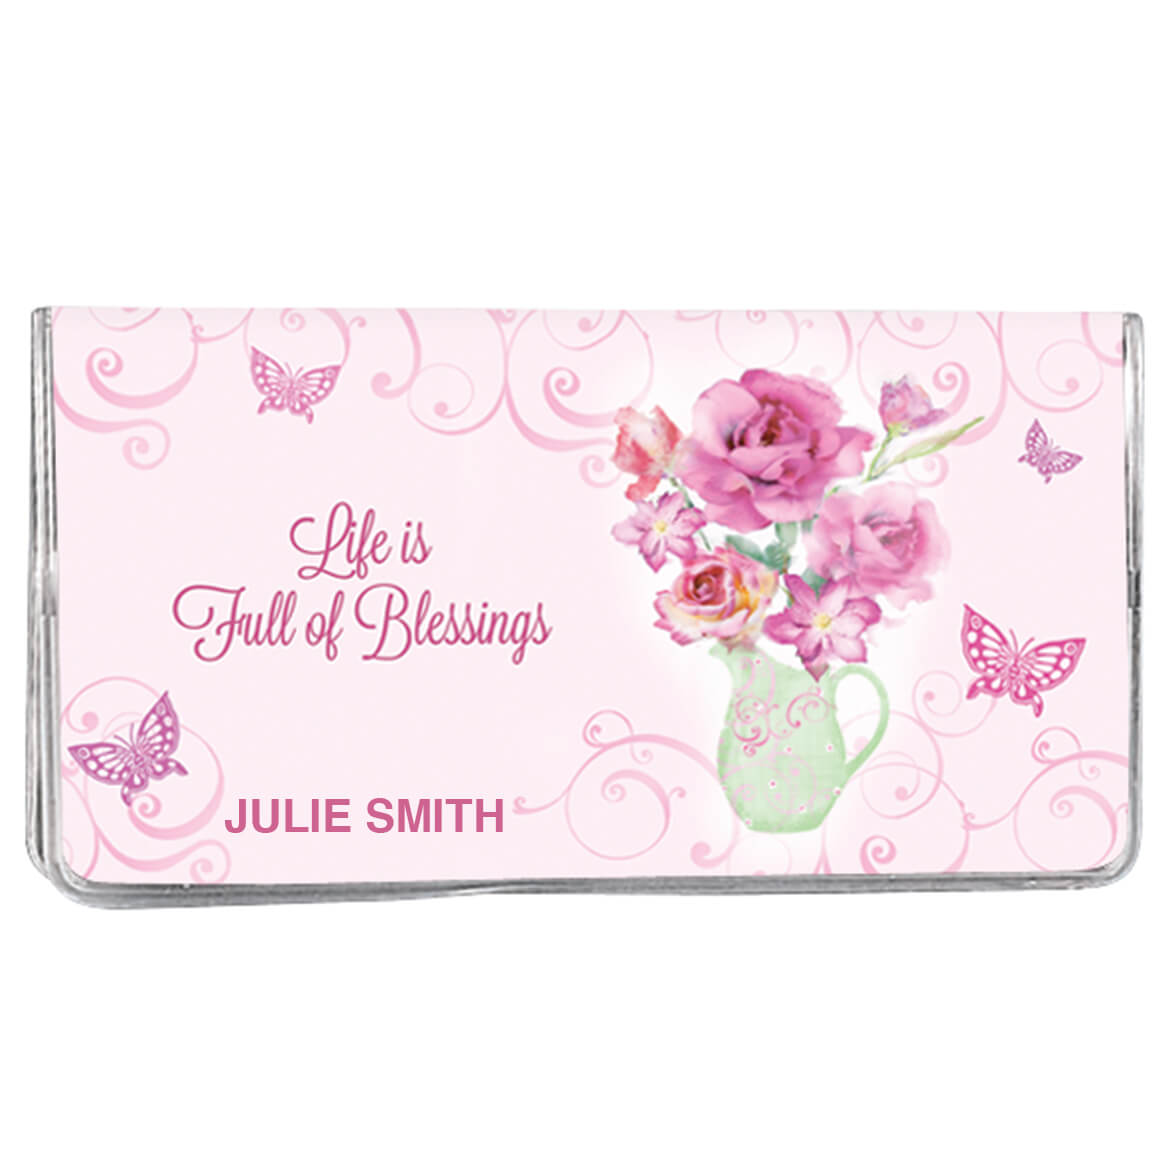 Pitcher of Blessings 2 Year Personalized Planner-345806